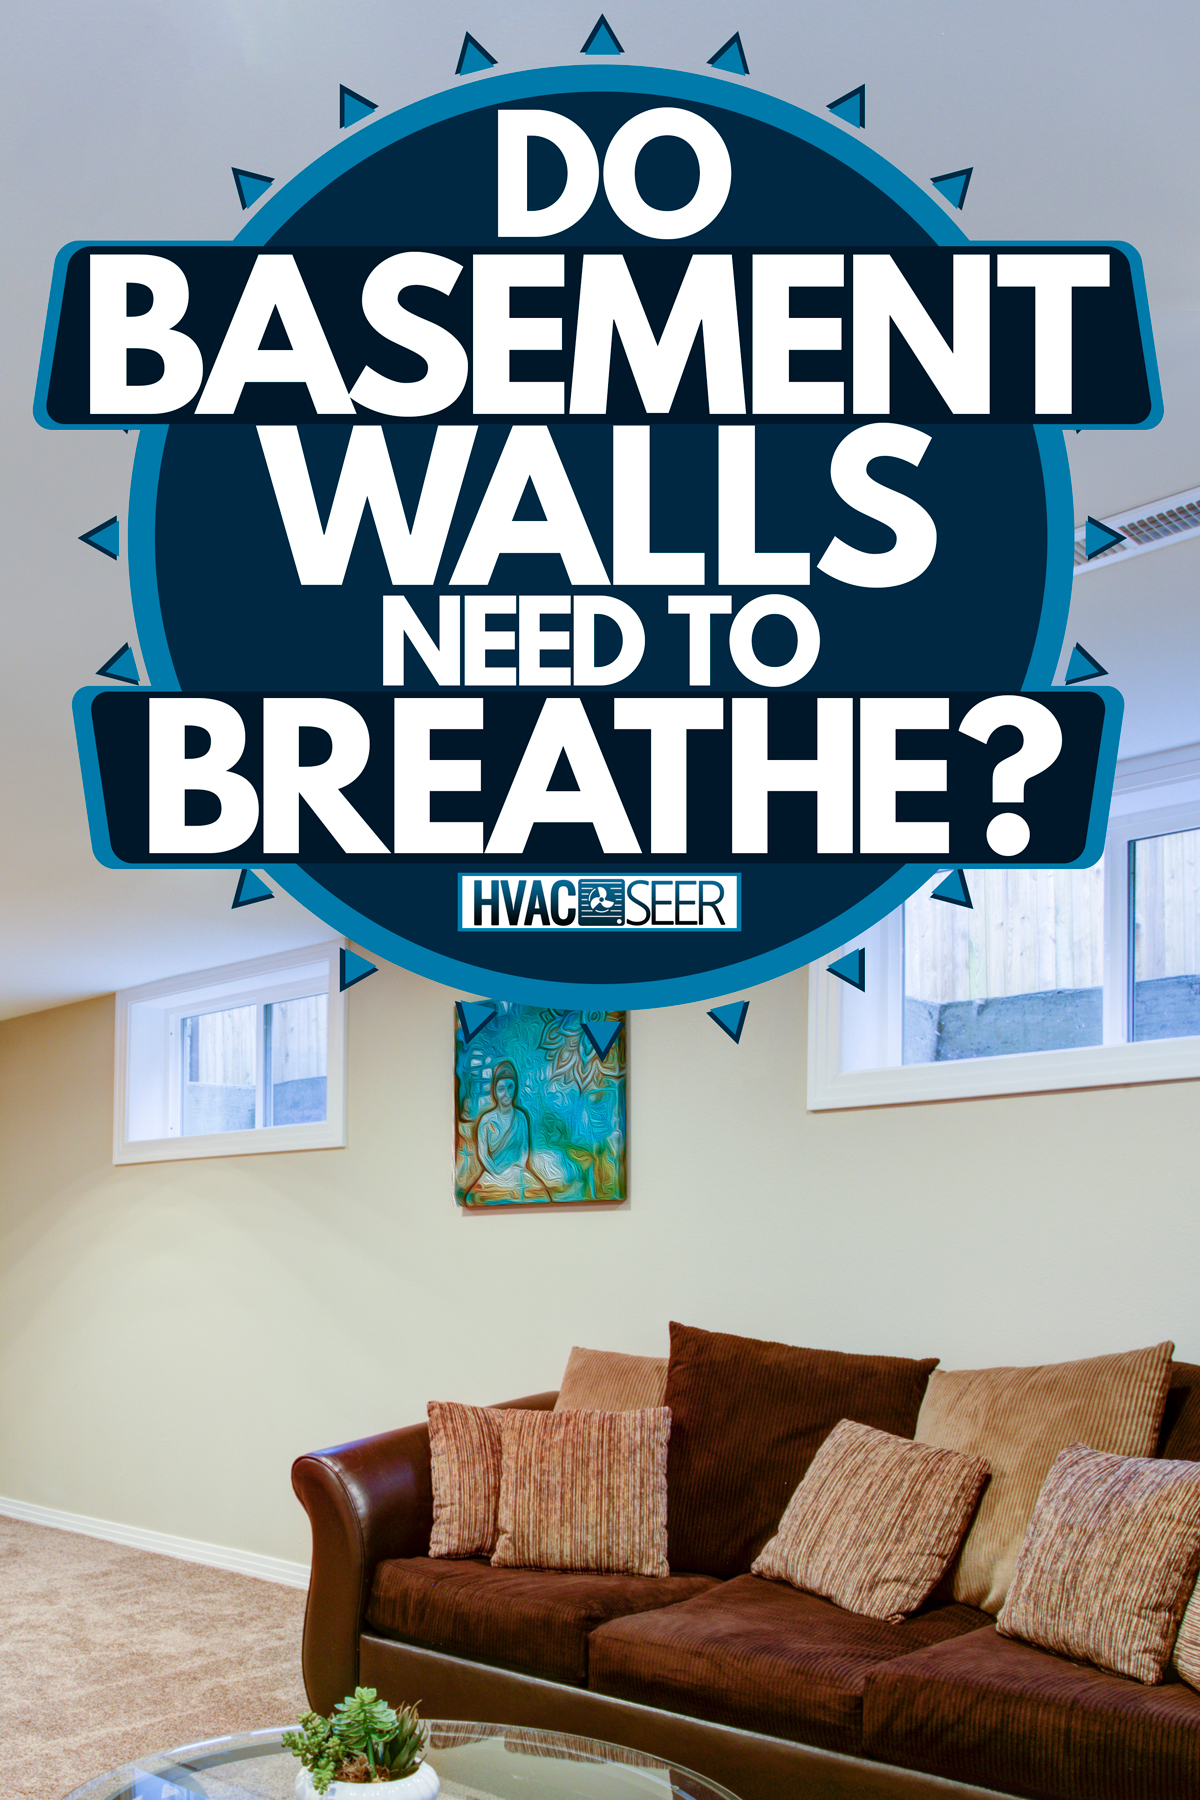 A modern basement with cream colored walls, wooden cabinets, and a brown sleeper couch, Do Basement Walls Need To Breathe?